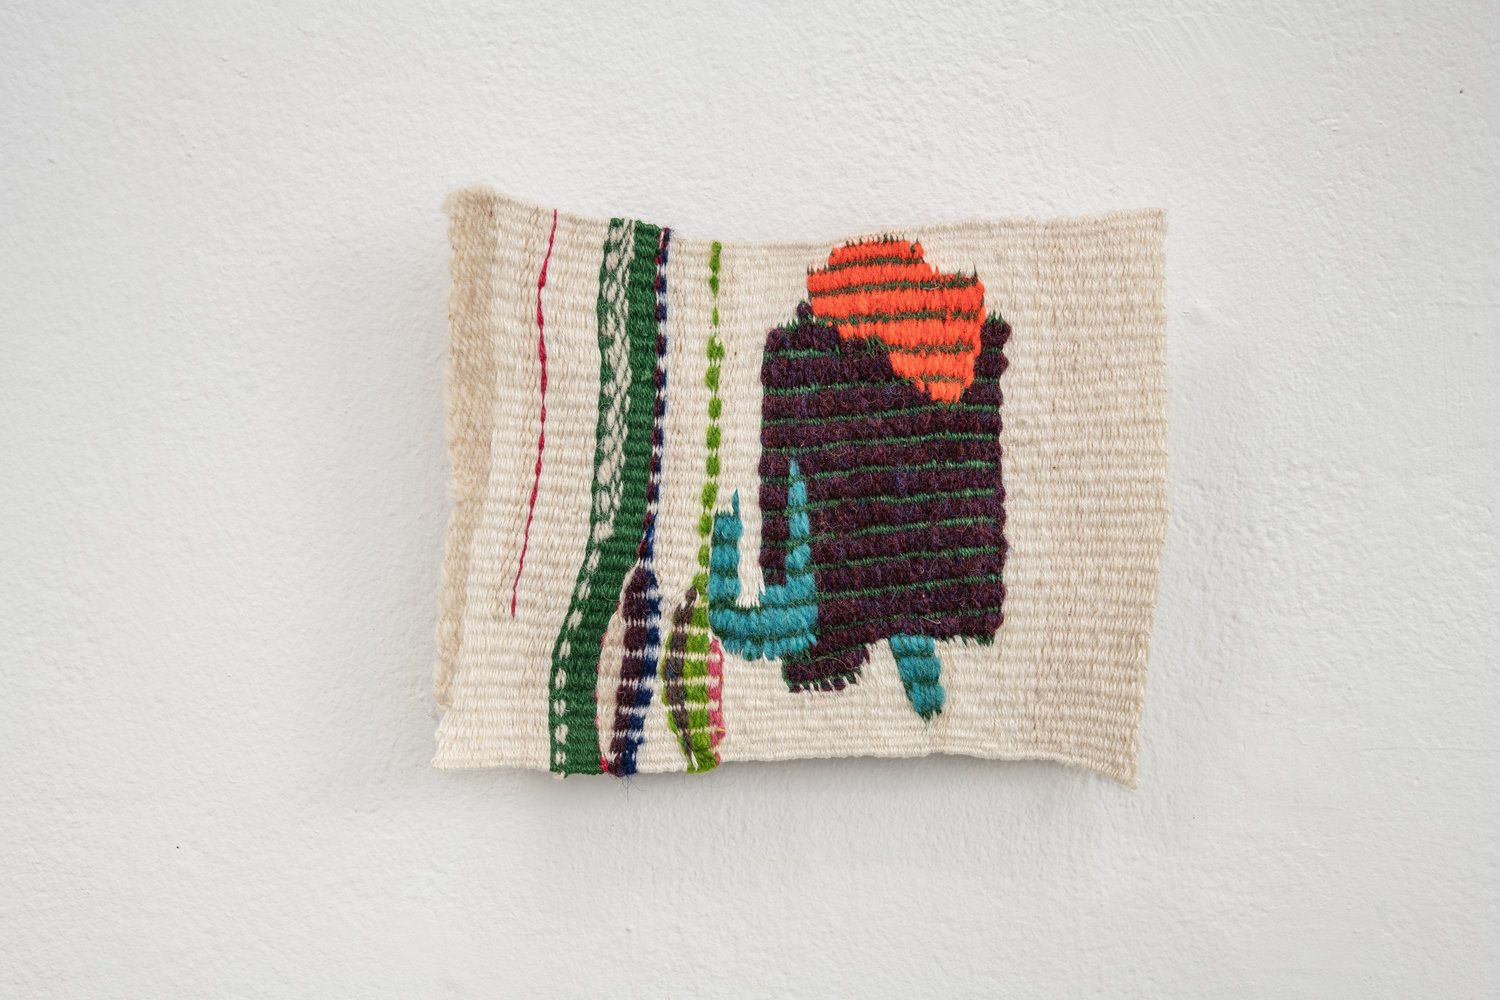 a small weaving with abstracted shapes of colors on a wall